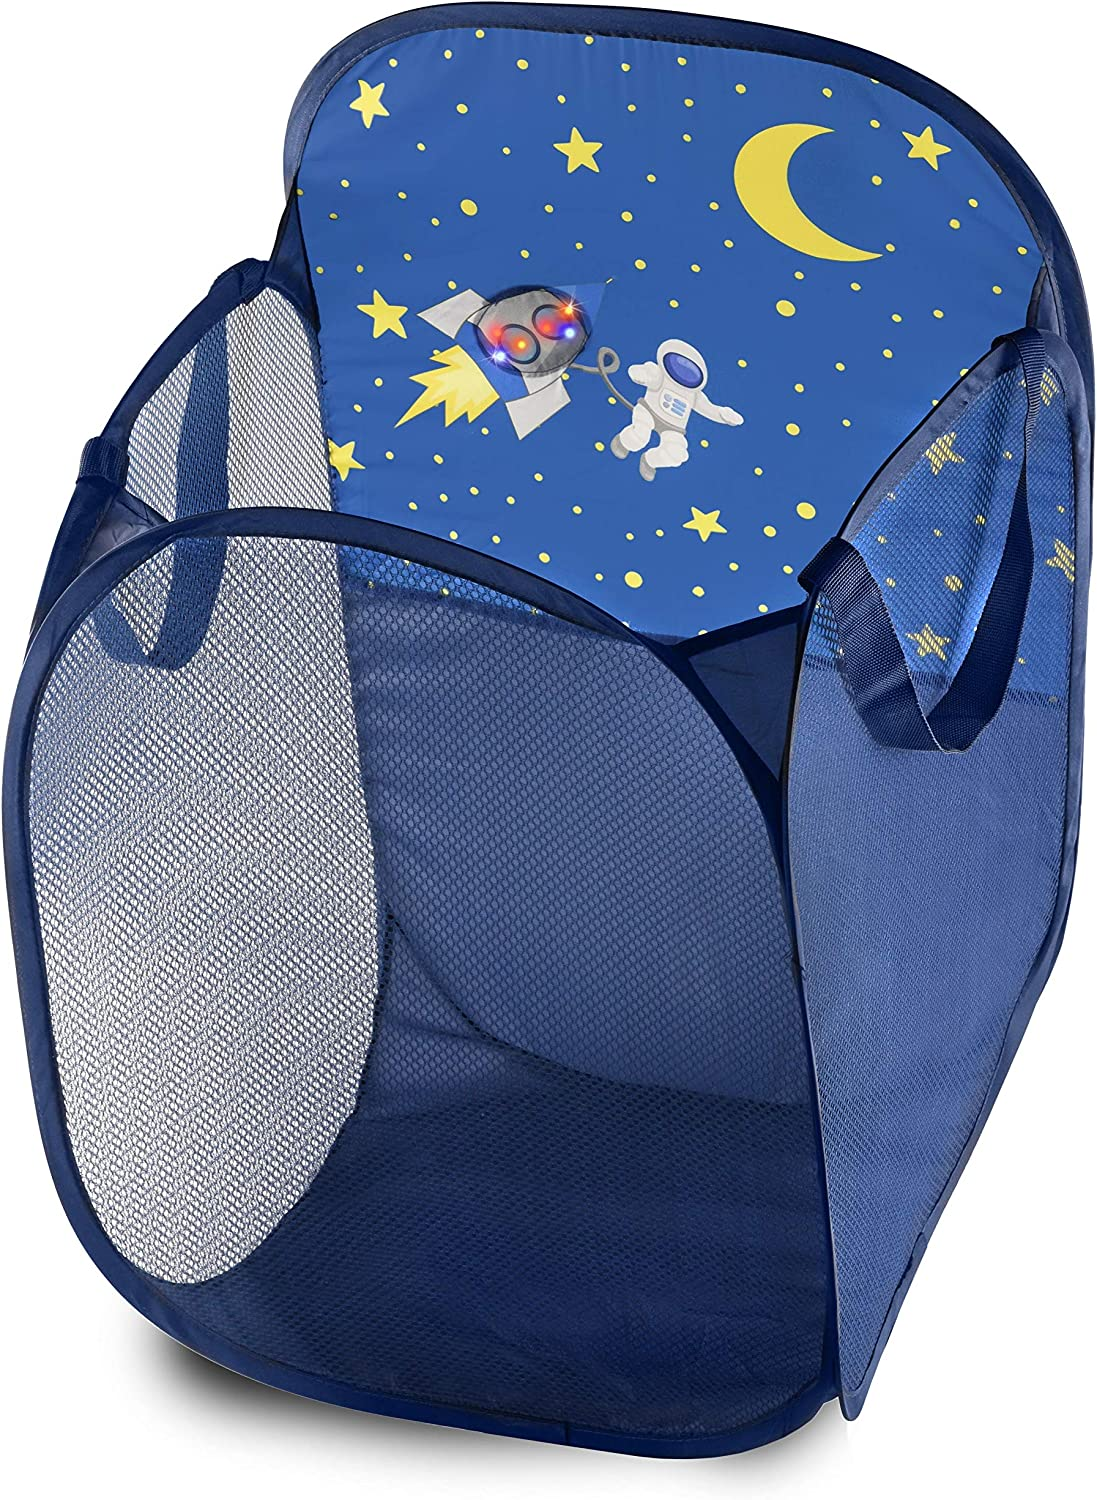 Kids Fun LED Space Ship Light-Up Mesh Pop-up Hamper, Collapsible Space Saving and Easy to Store, Reinforced Heavy Duty Side Carry Handles